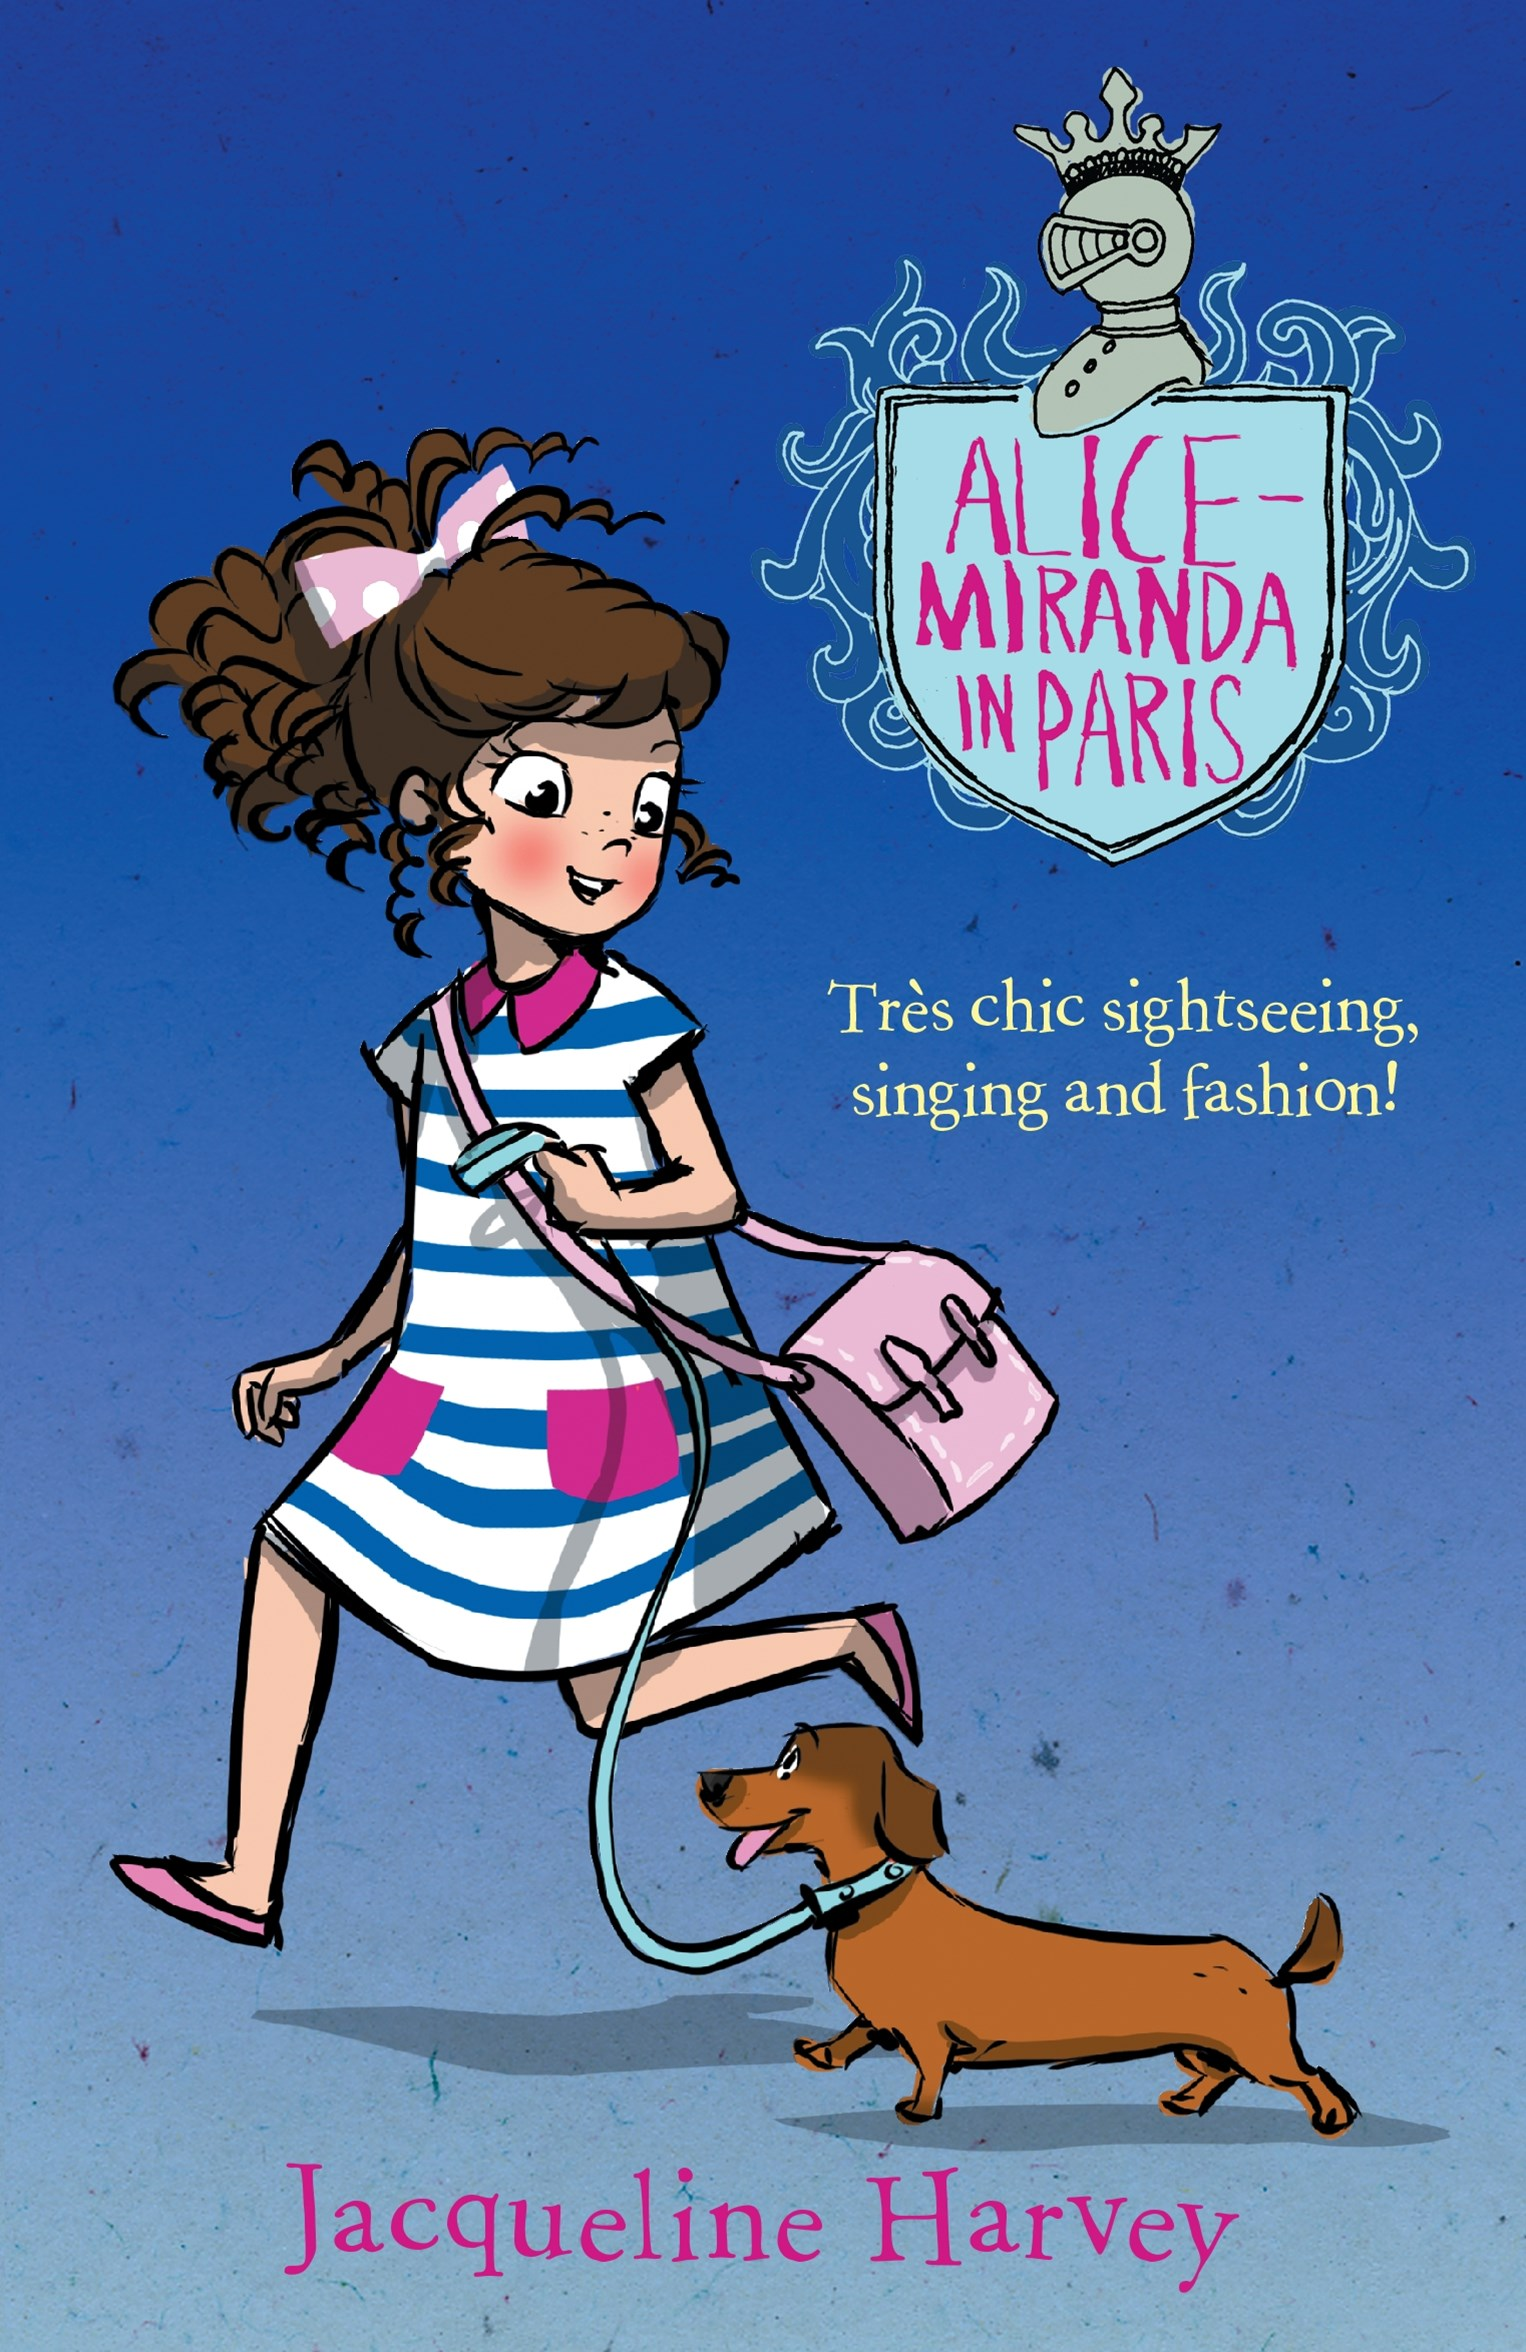 Alice-Miranda in Paris (Alice-Miranda Book 7)